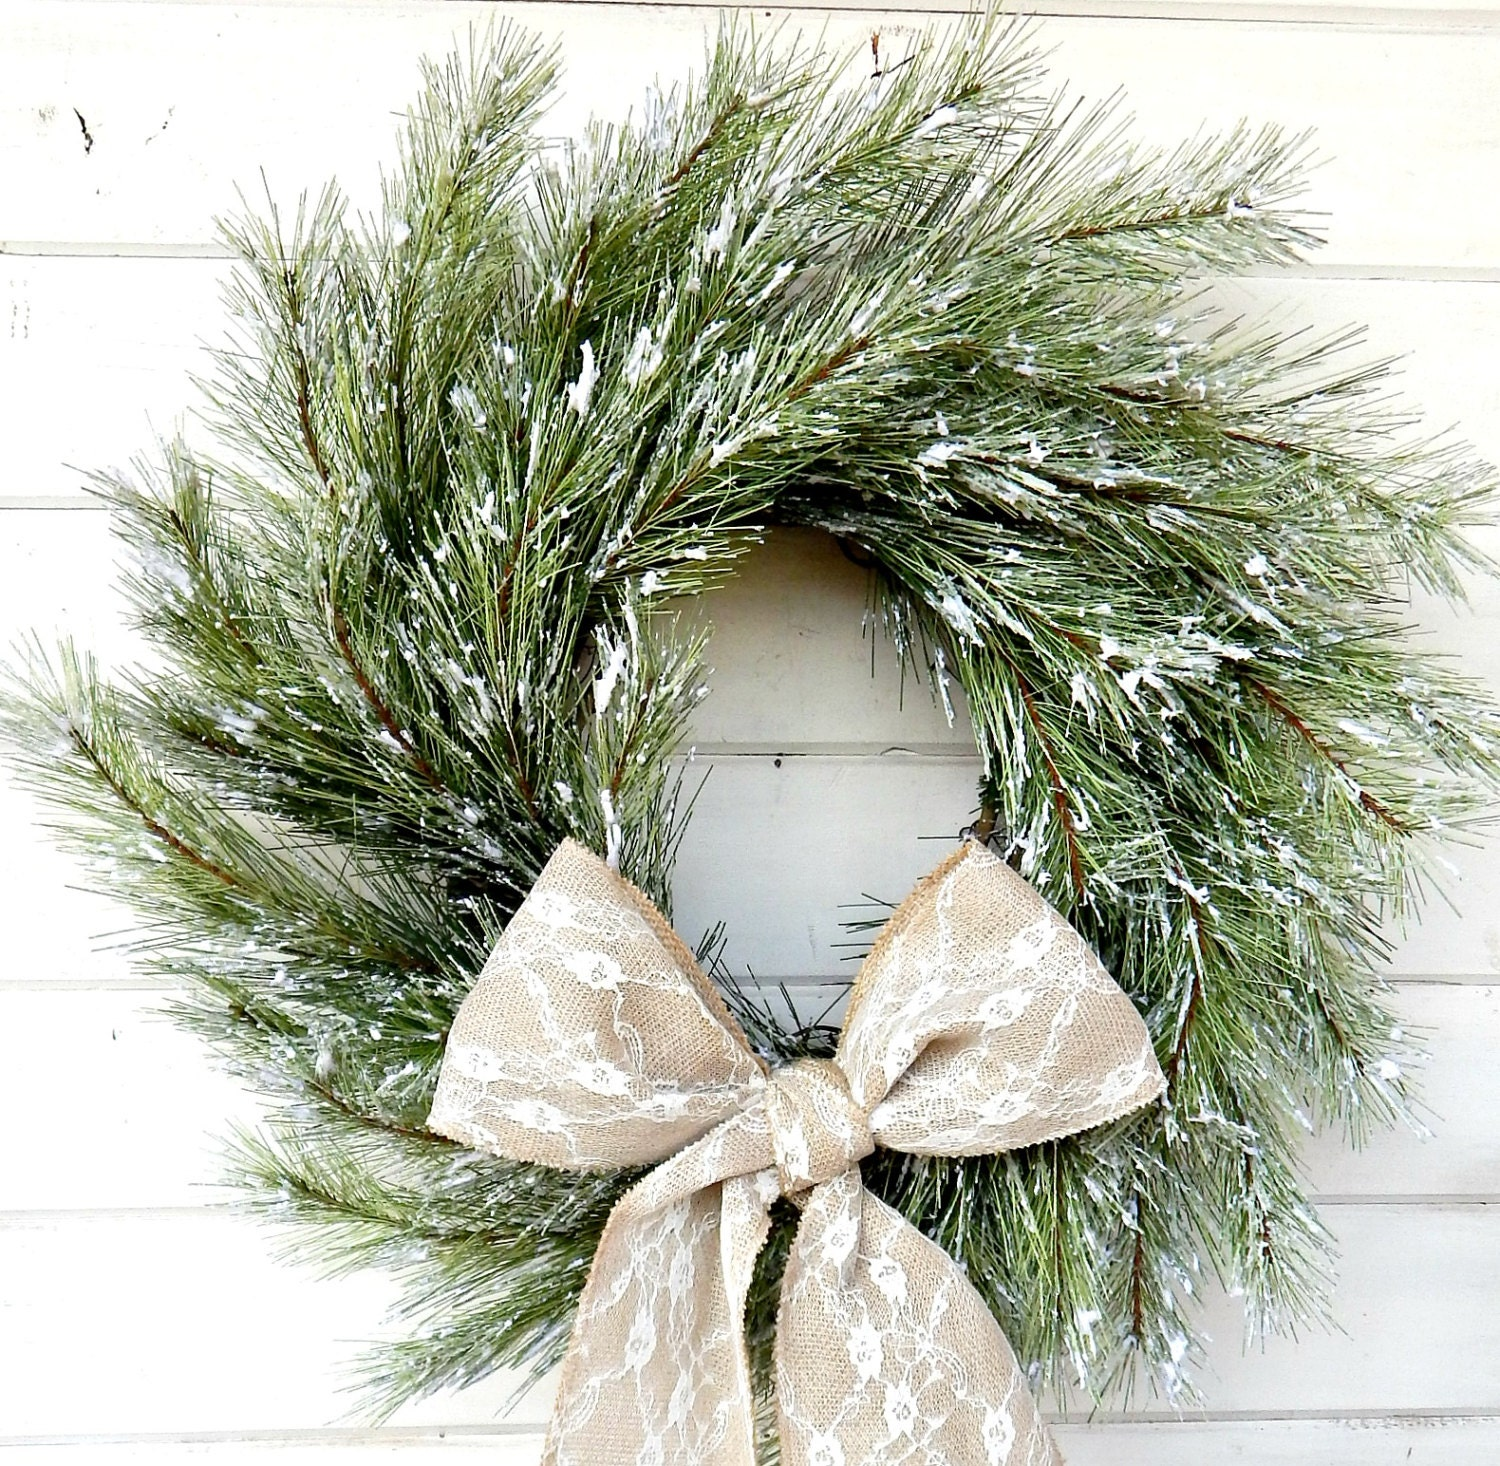 cyber monday sale christmas wreath snowy pine wreath winter door wreath holiday door wreath christmas wreath holiday home decor gifts